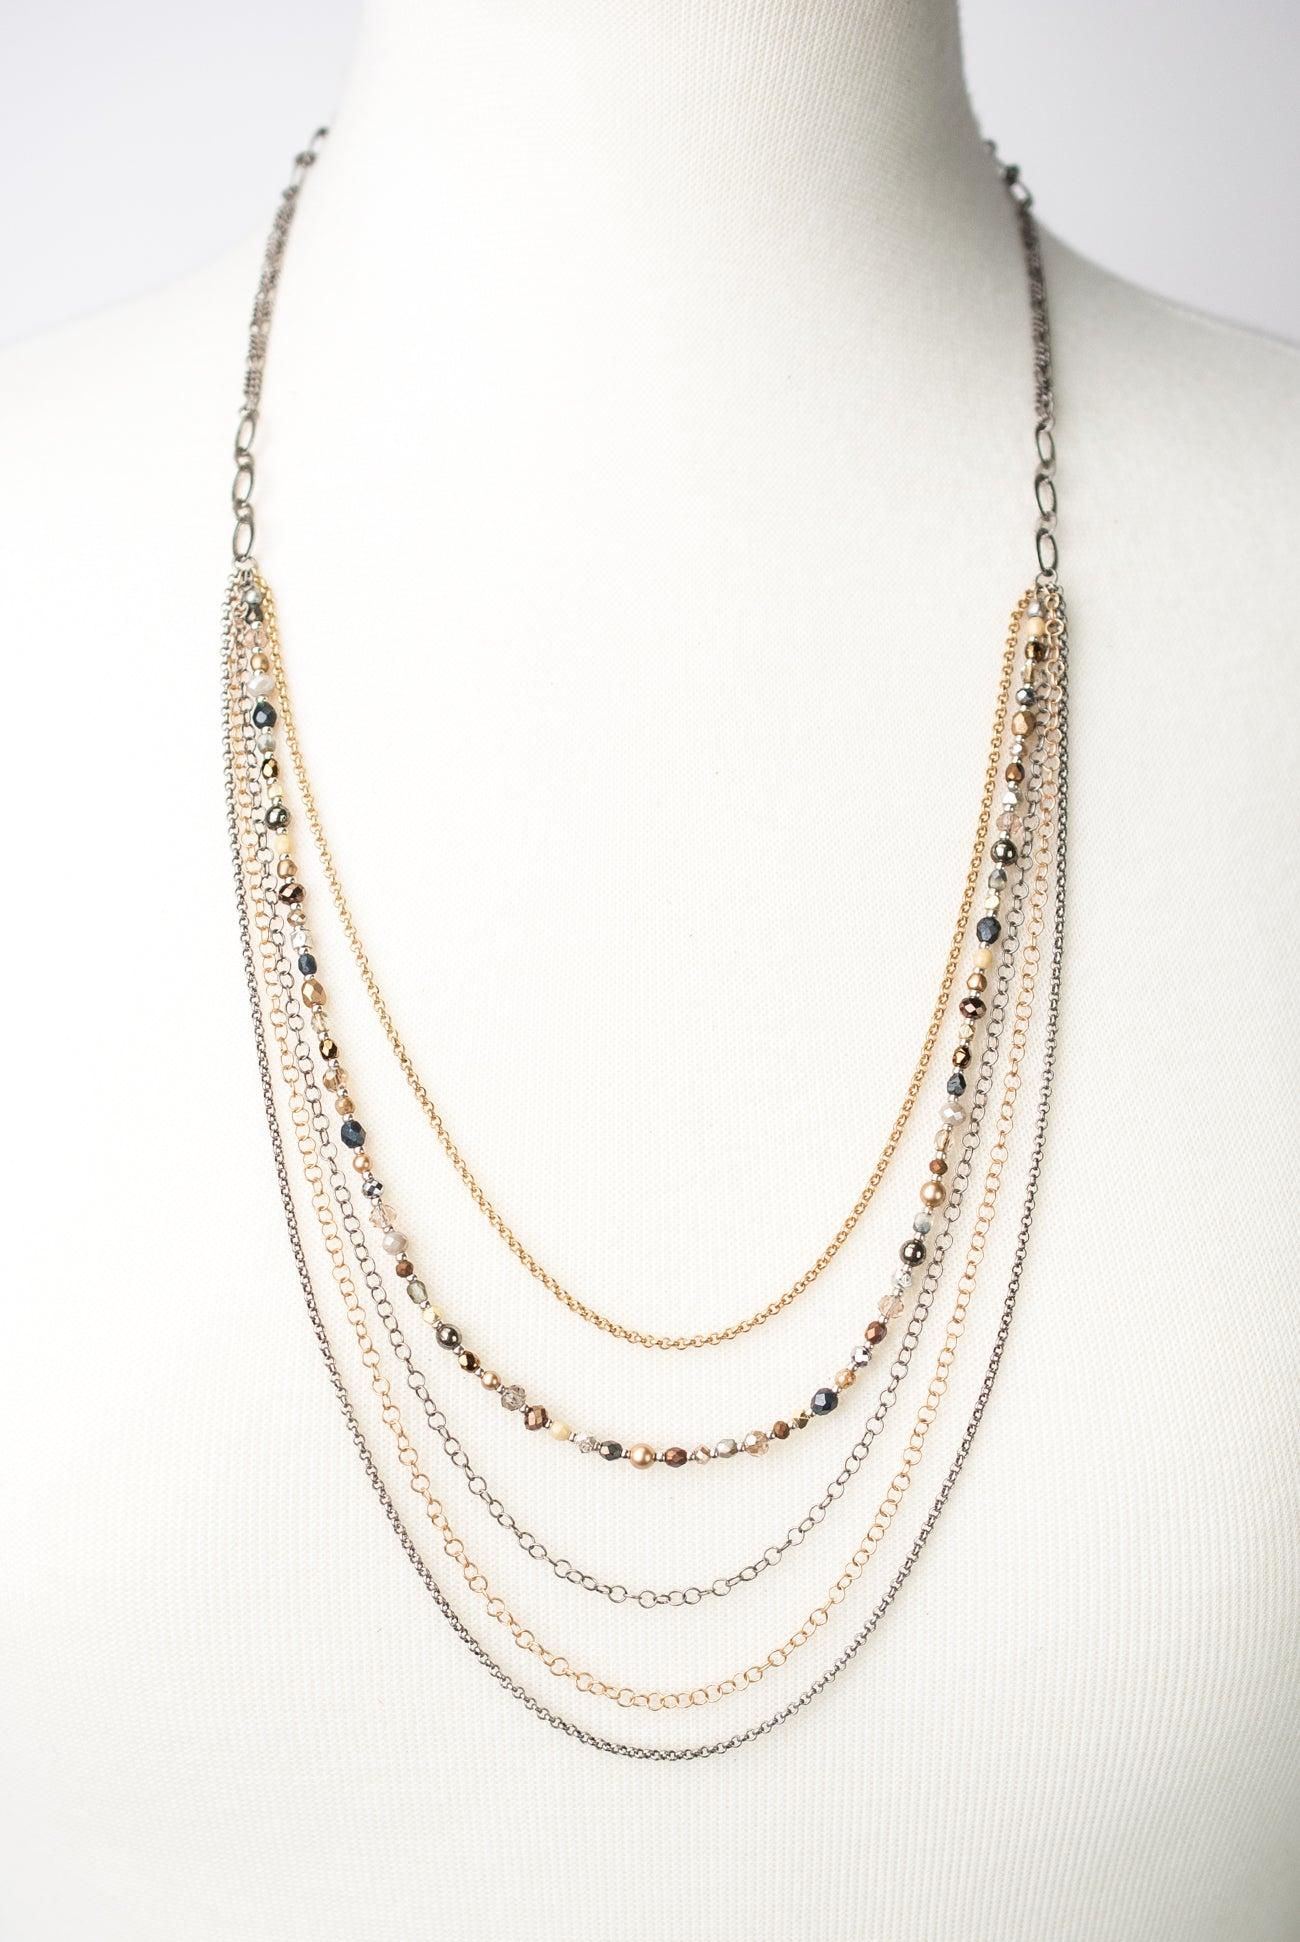 "Silver & Gold 26.5-28.5"" Fine Multistrand Necklace"